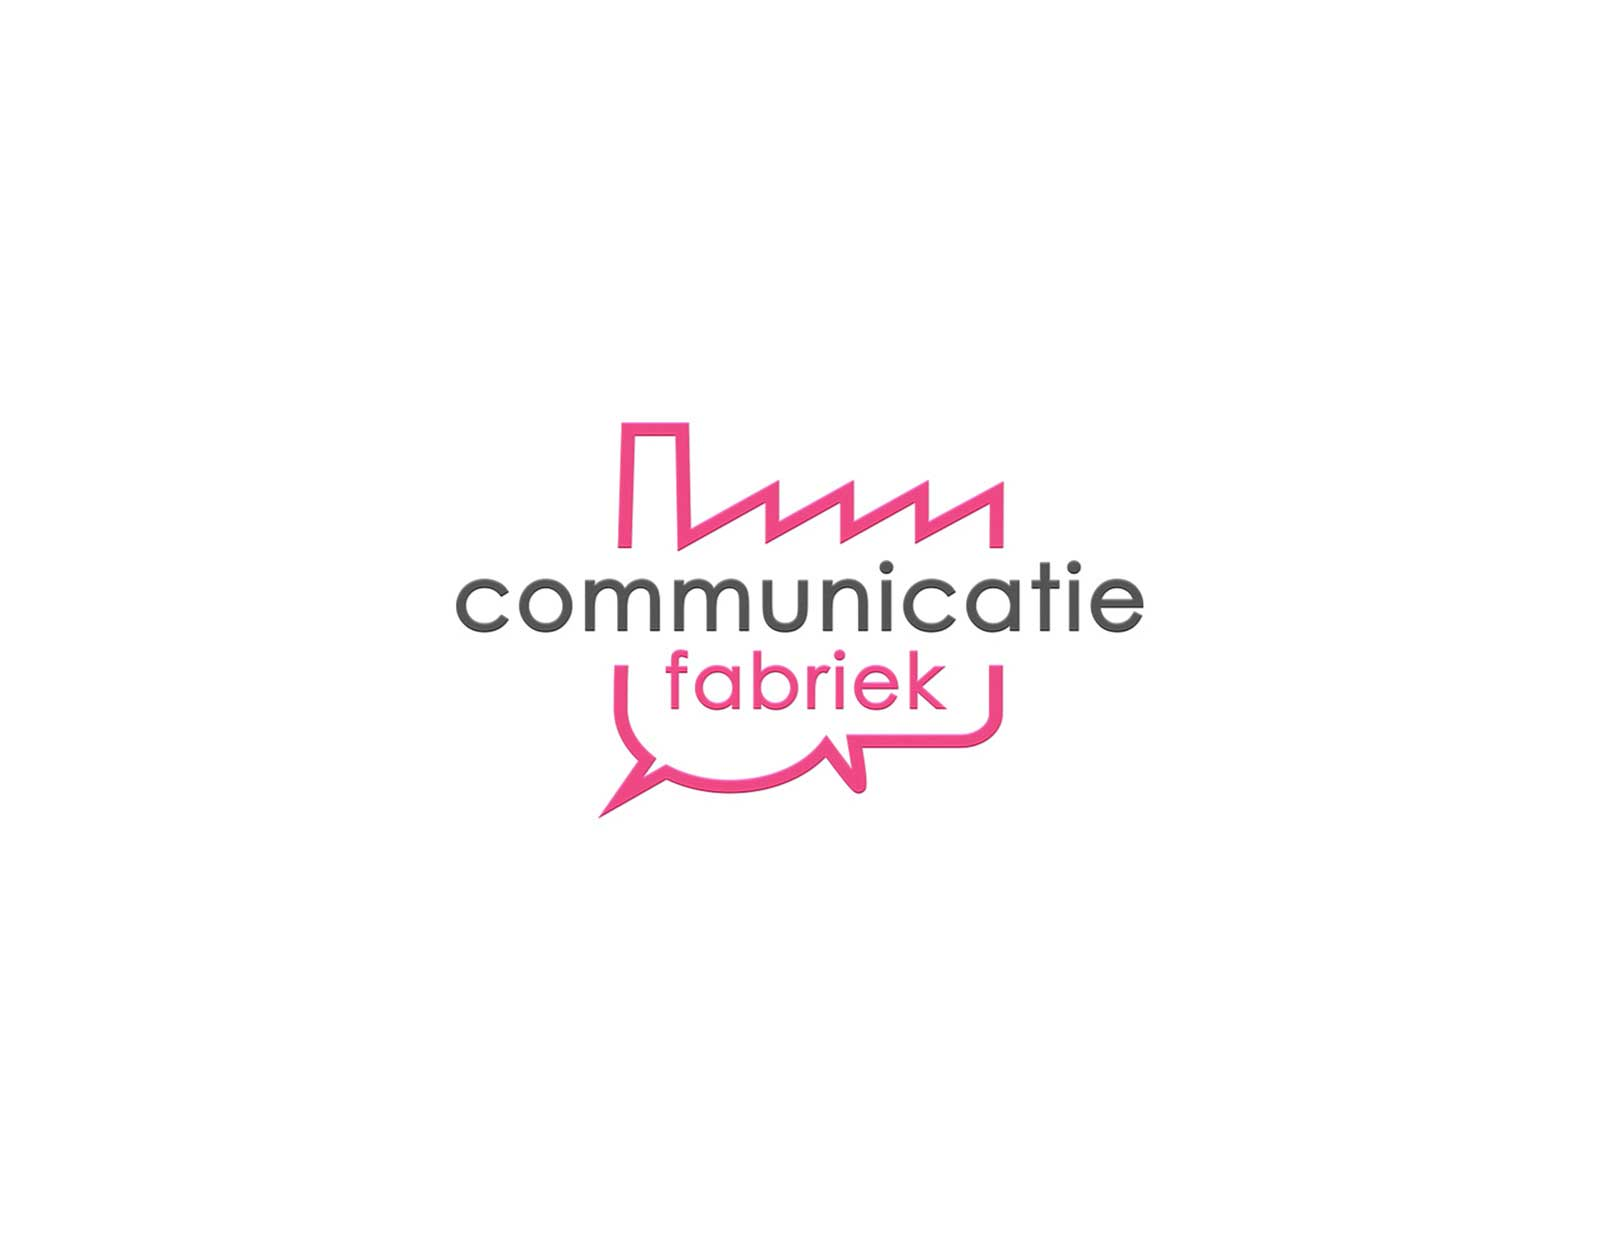 Communicatiefabriek-website